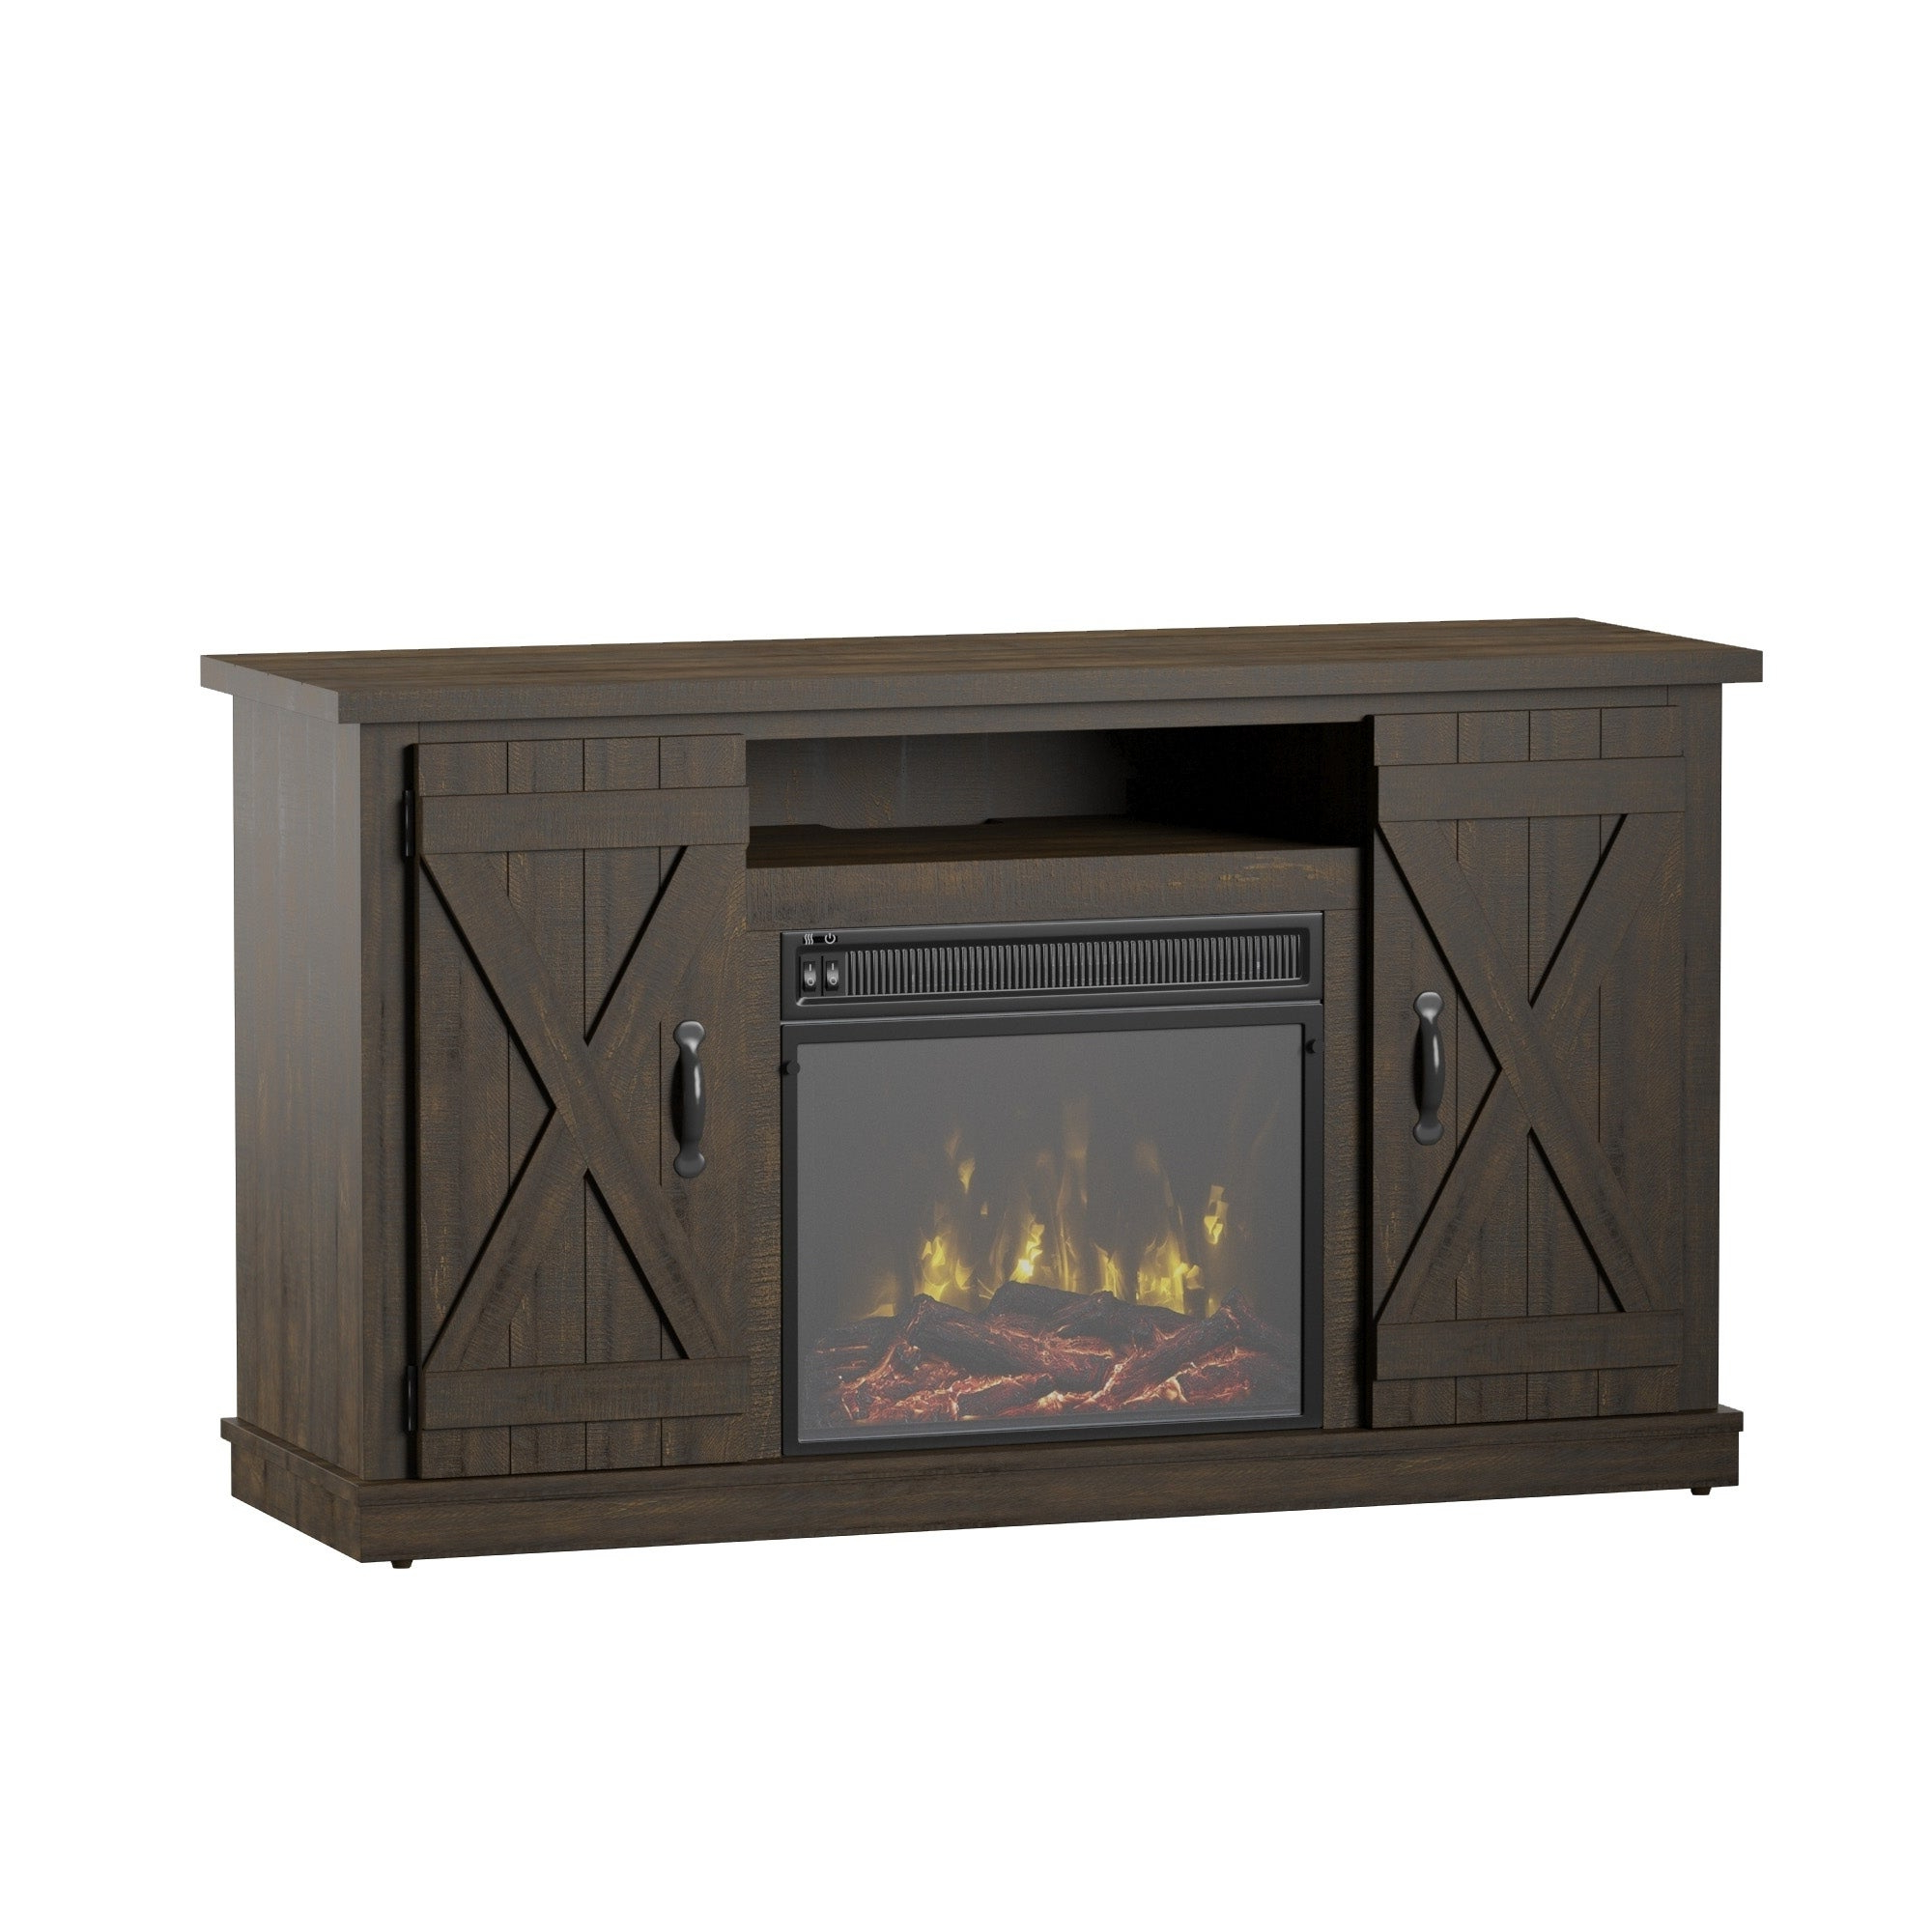 """Shop Cottonwood Tv Stand For Tvs Up To 55"""", Saw Cut Espresso With Ericka Tv Stands For Tvs Up To 42"""" (View 15 of 20)"""